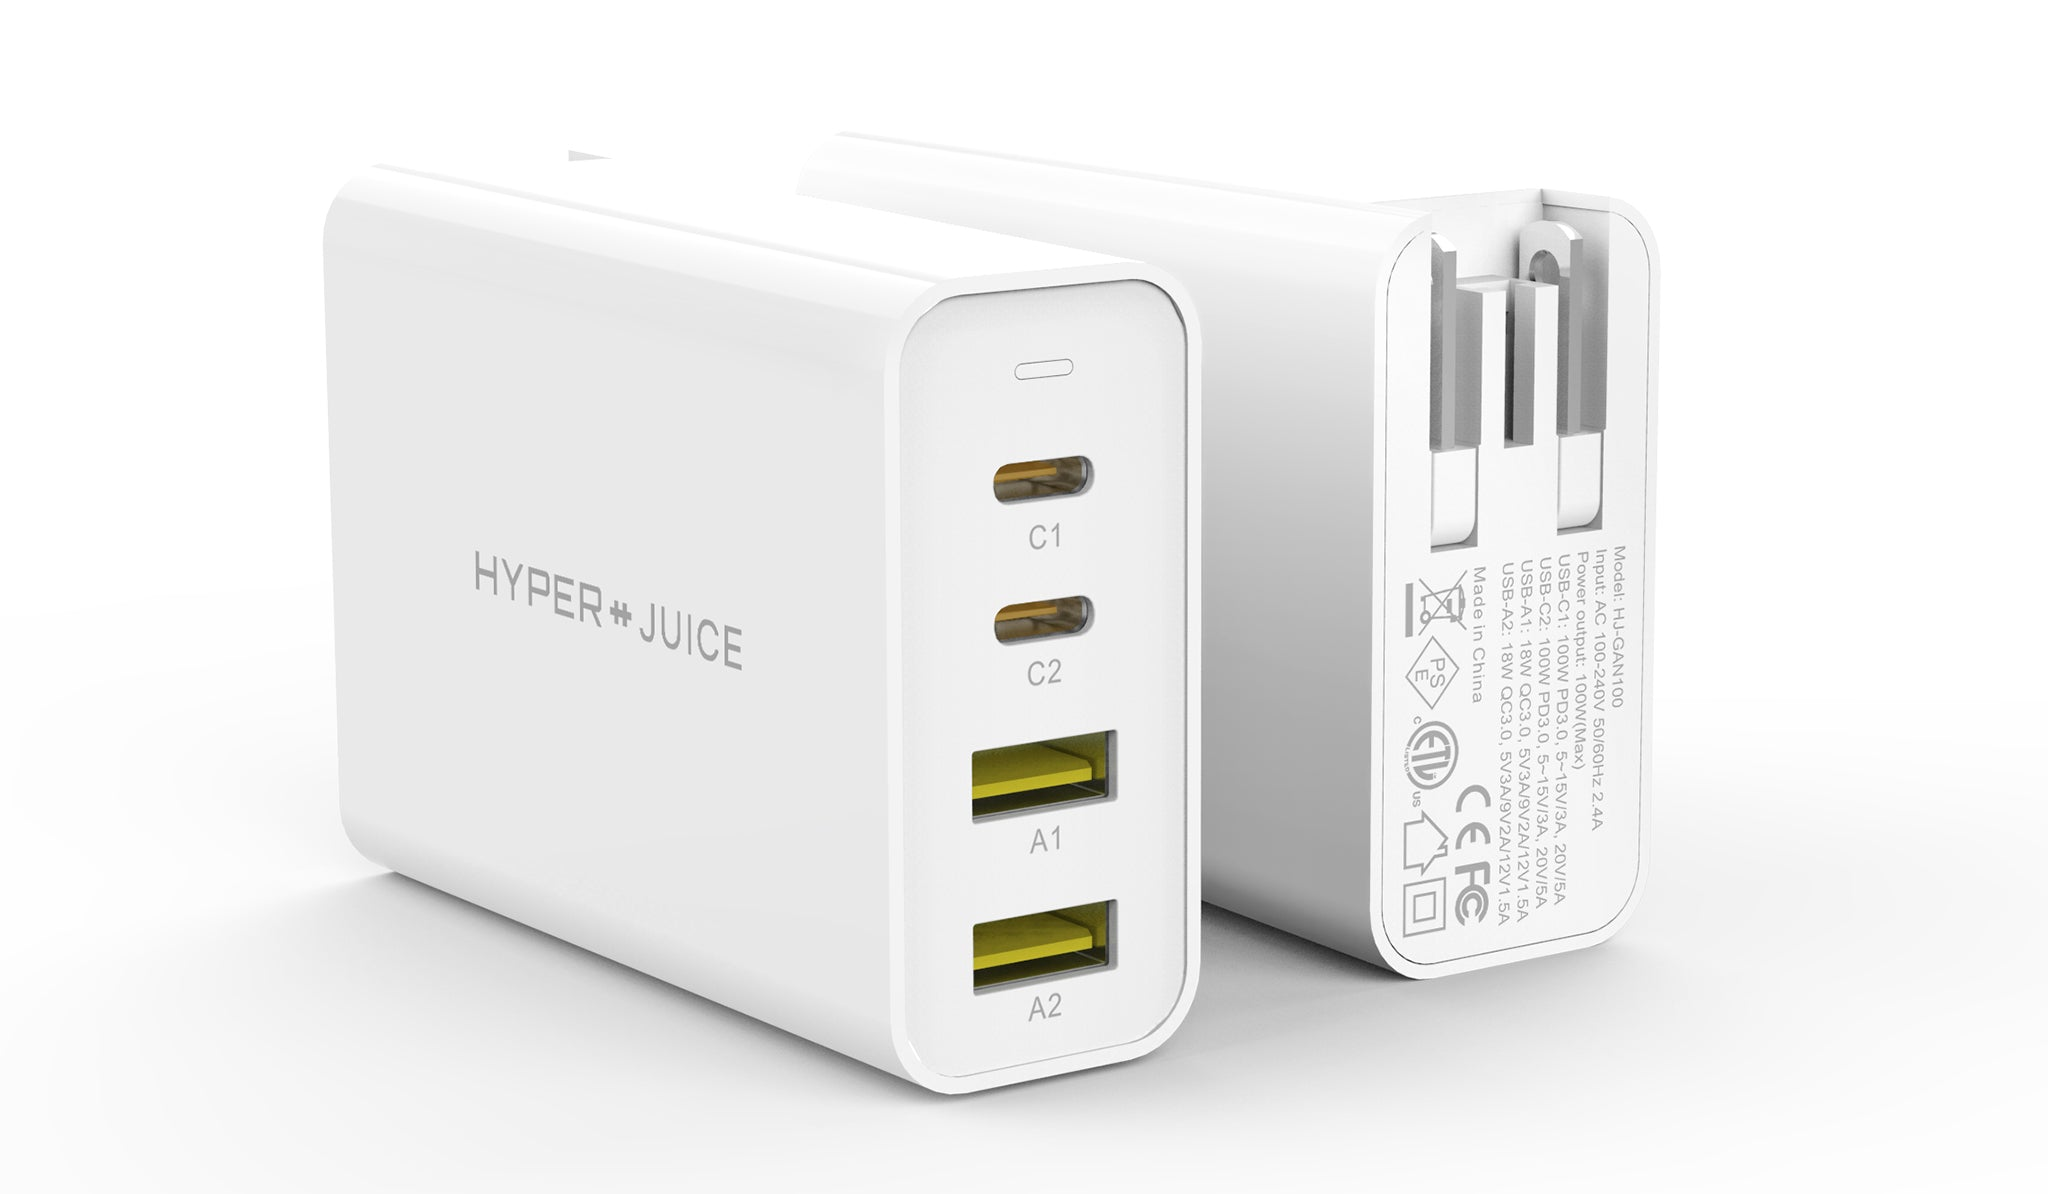 HyperJuice: World's First (and Smallest) 100W GaN Charger